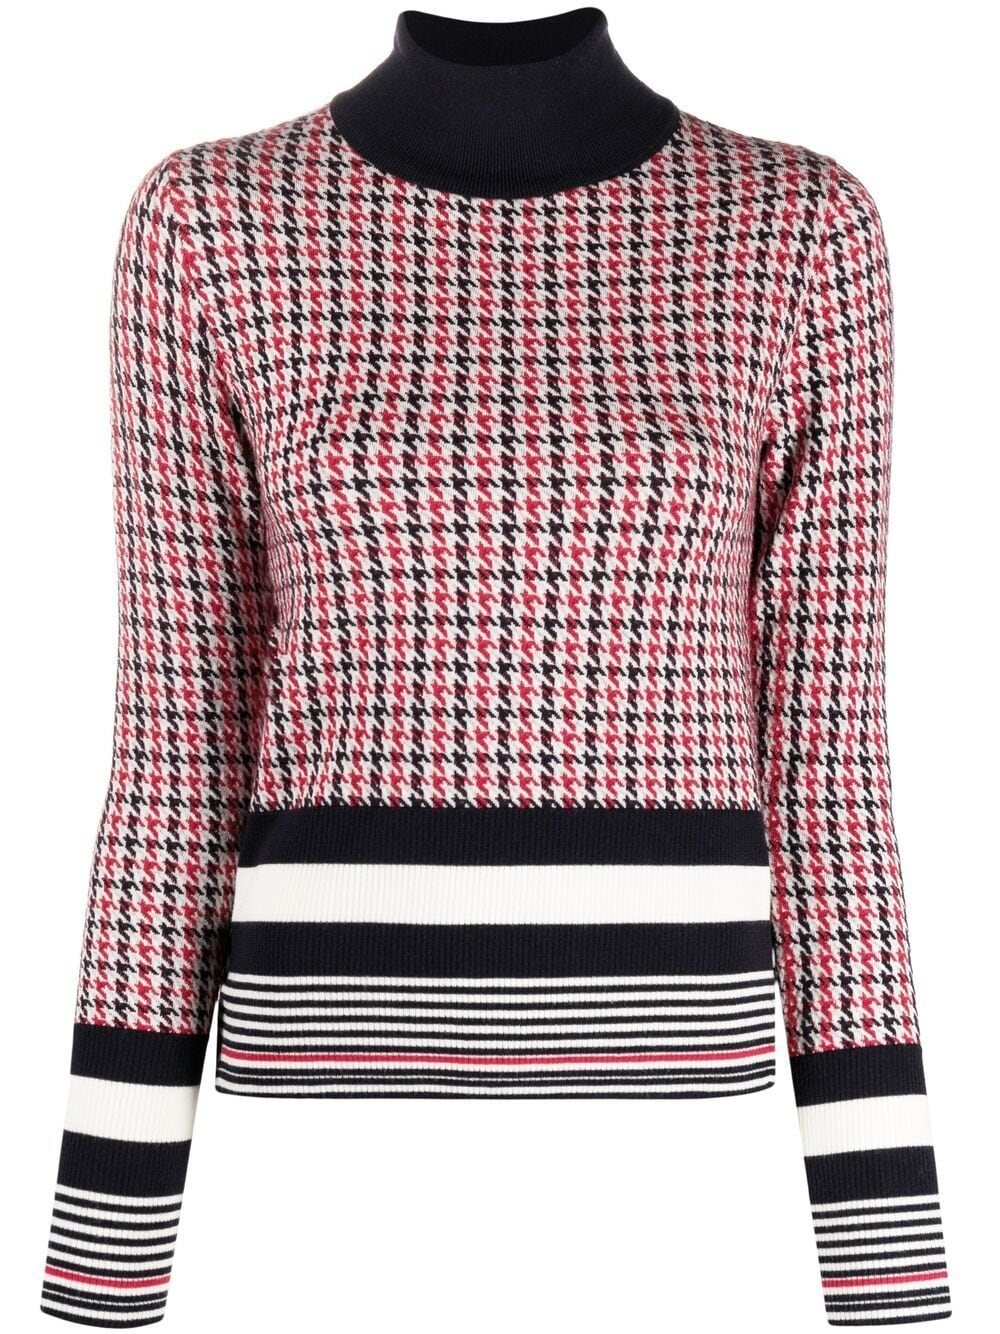 Thom Browne Pullover mit Muster - Rot